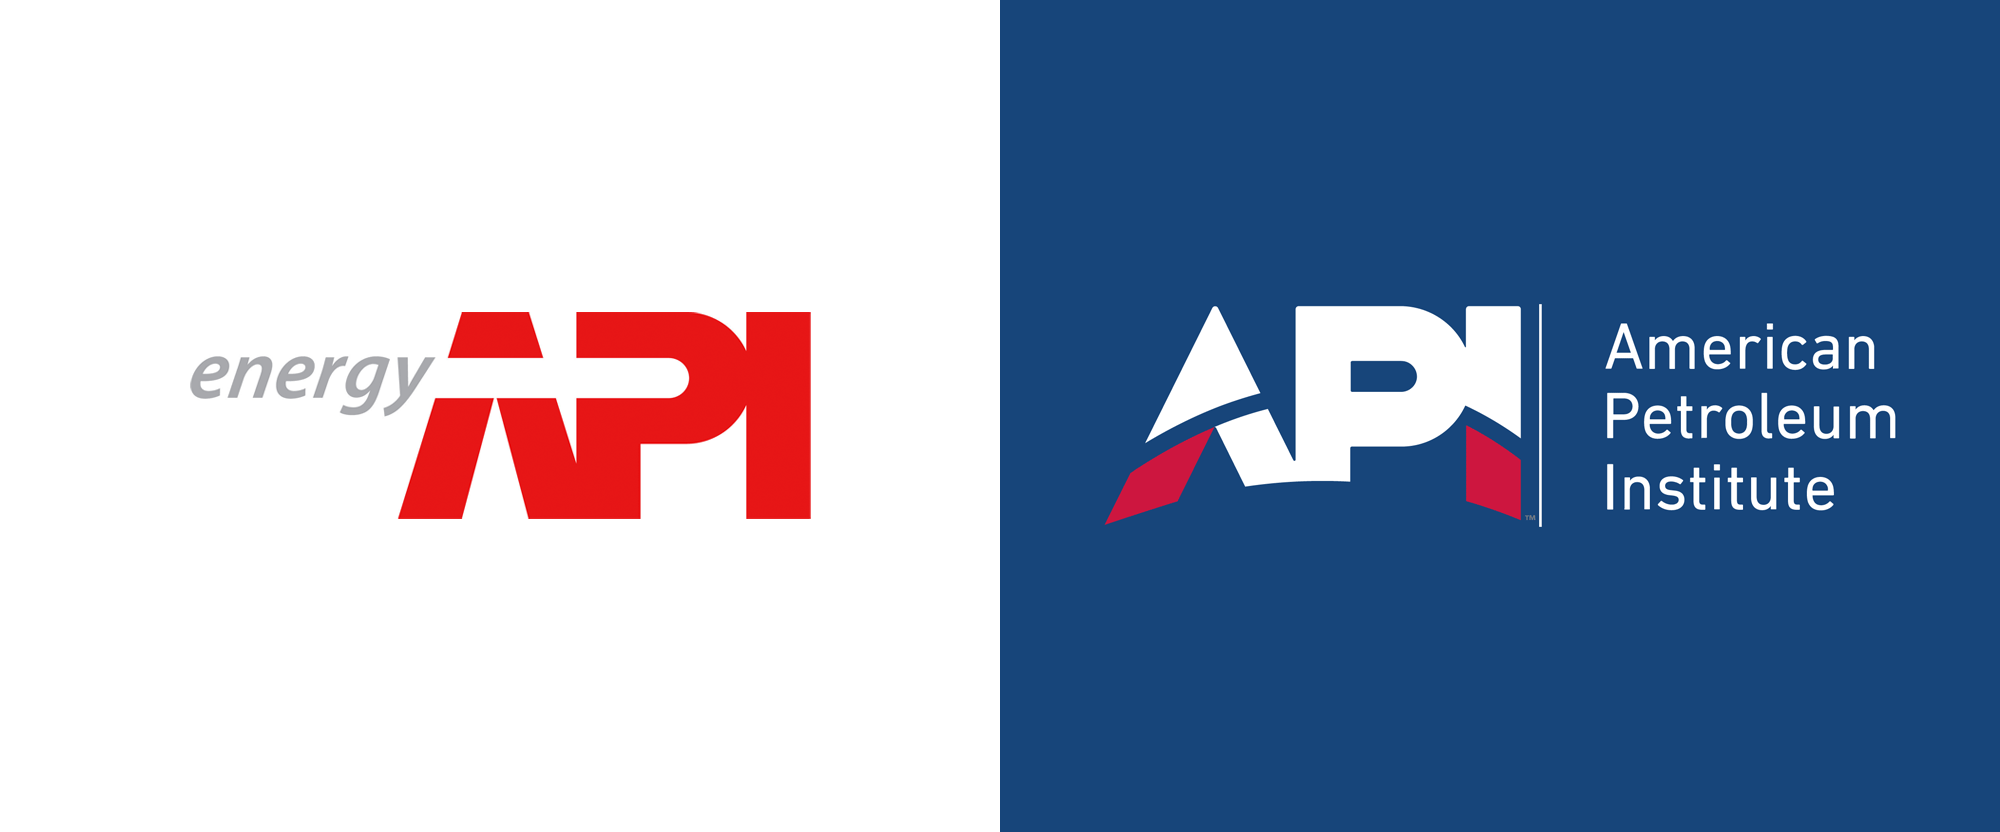 New Logo for American Petroleum Institute by Wantbranding